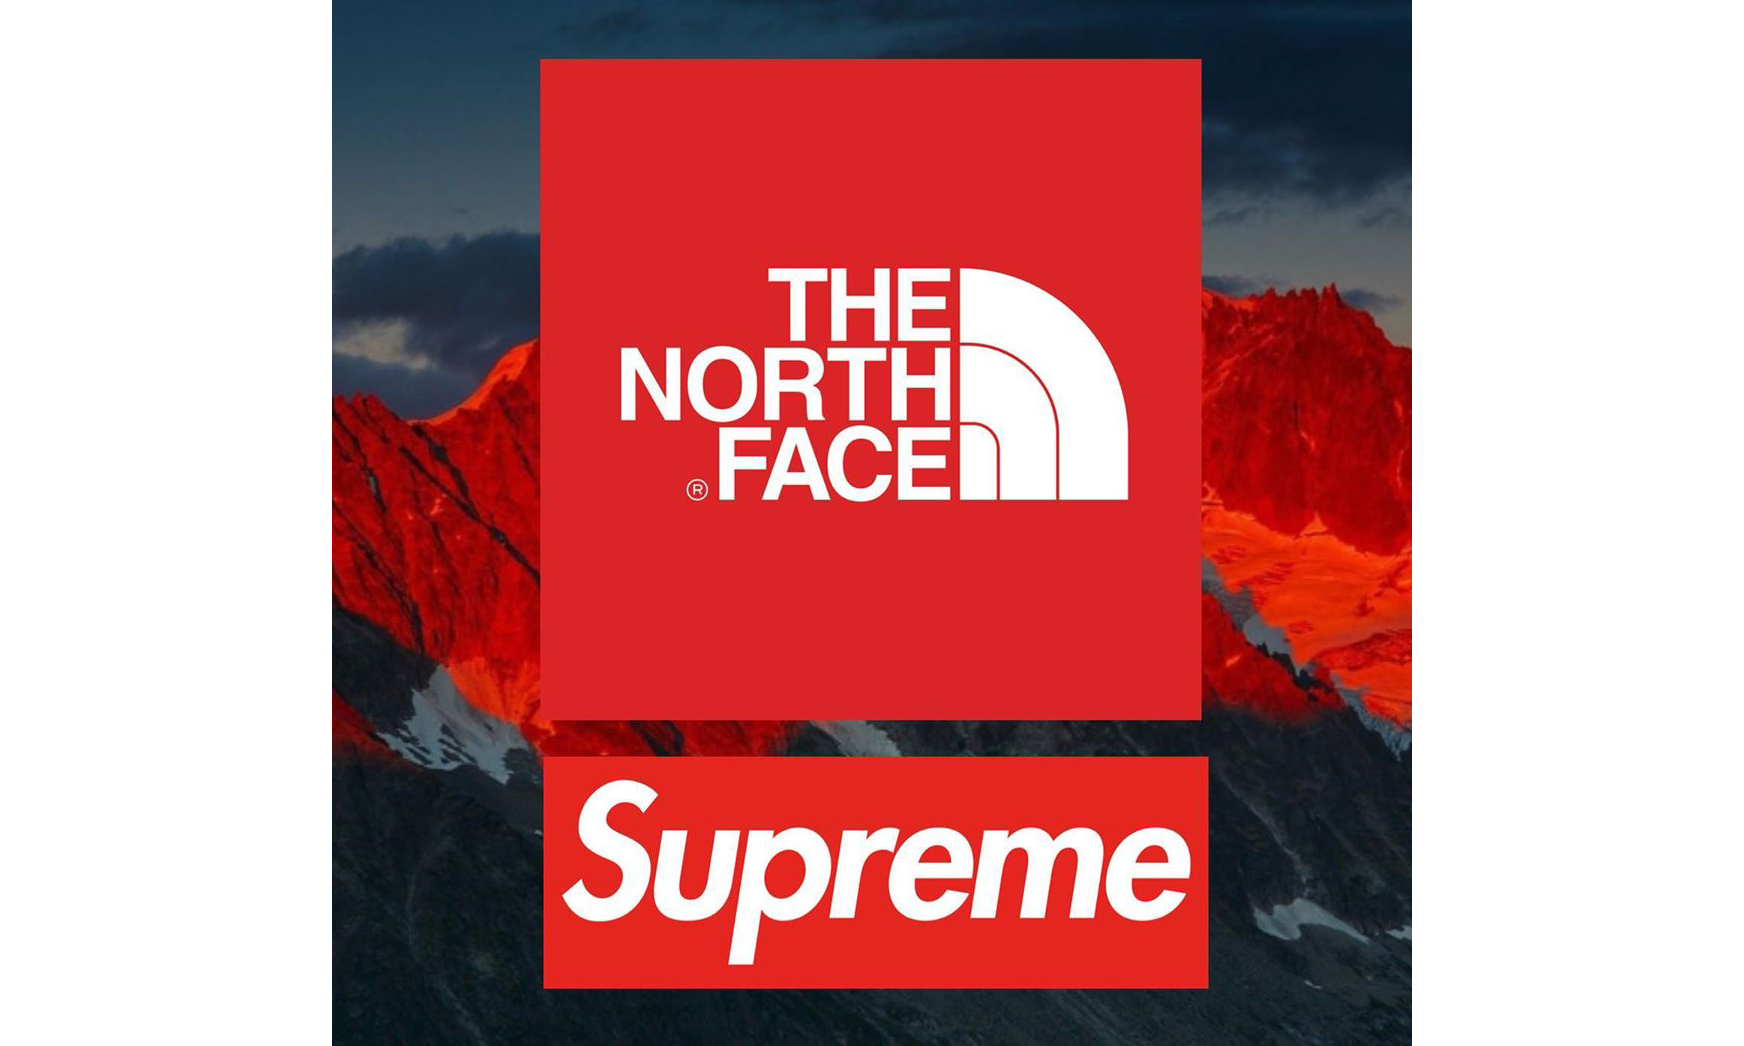 THE NORTH FACE x Supreme 新辑联名即将释出